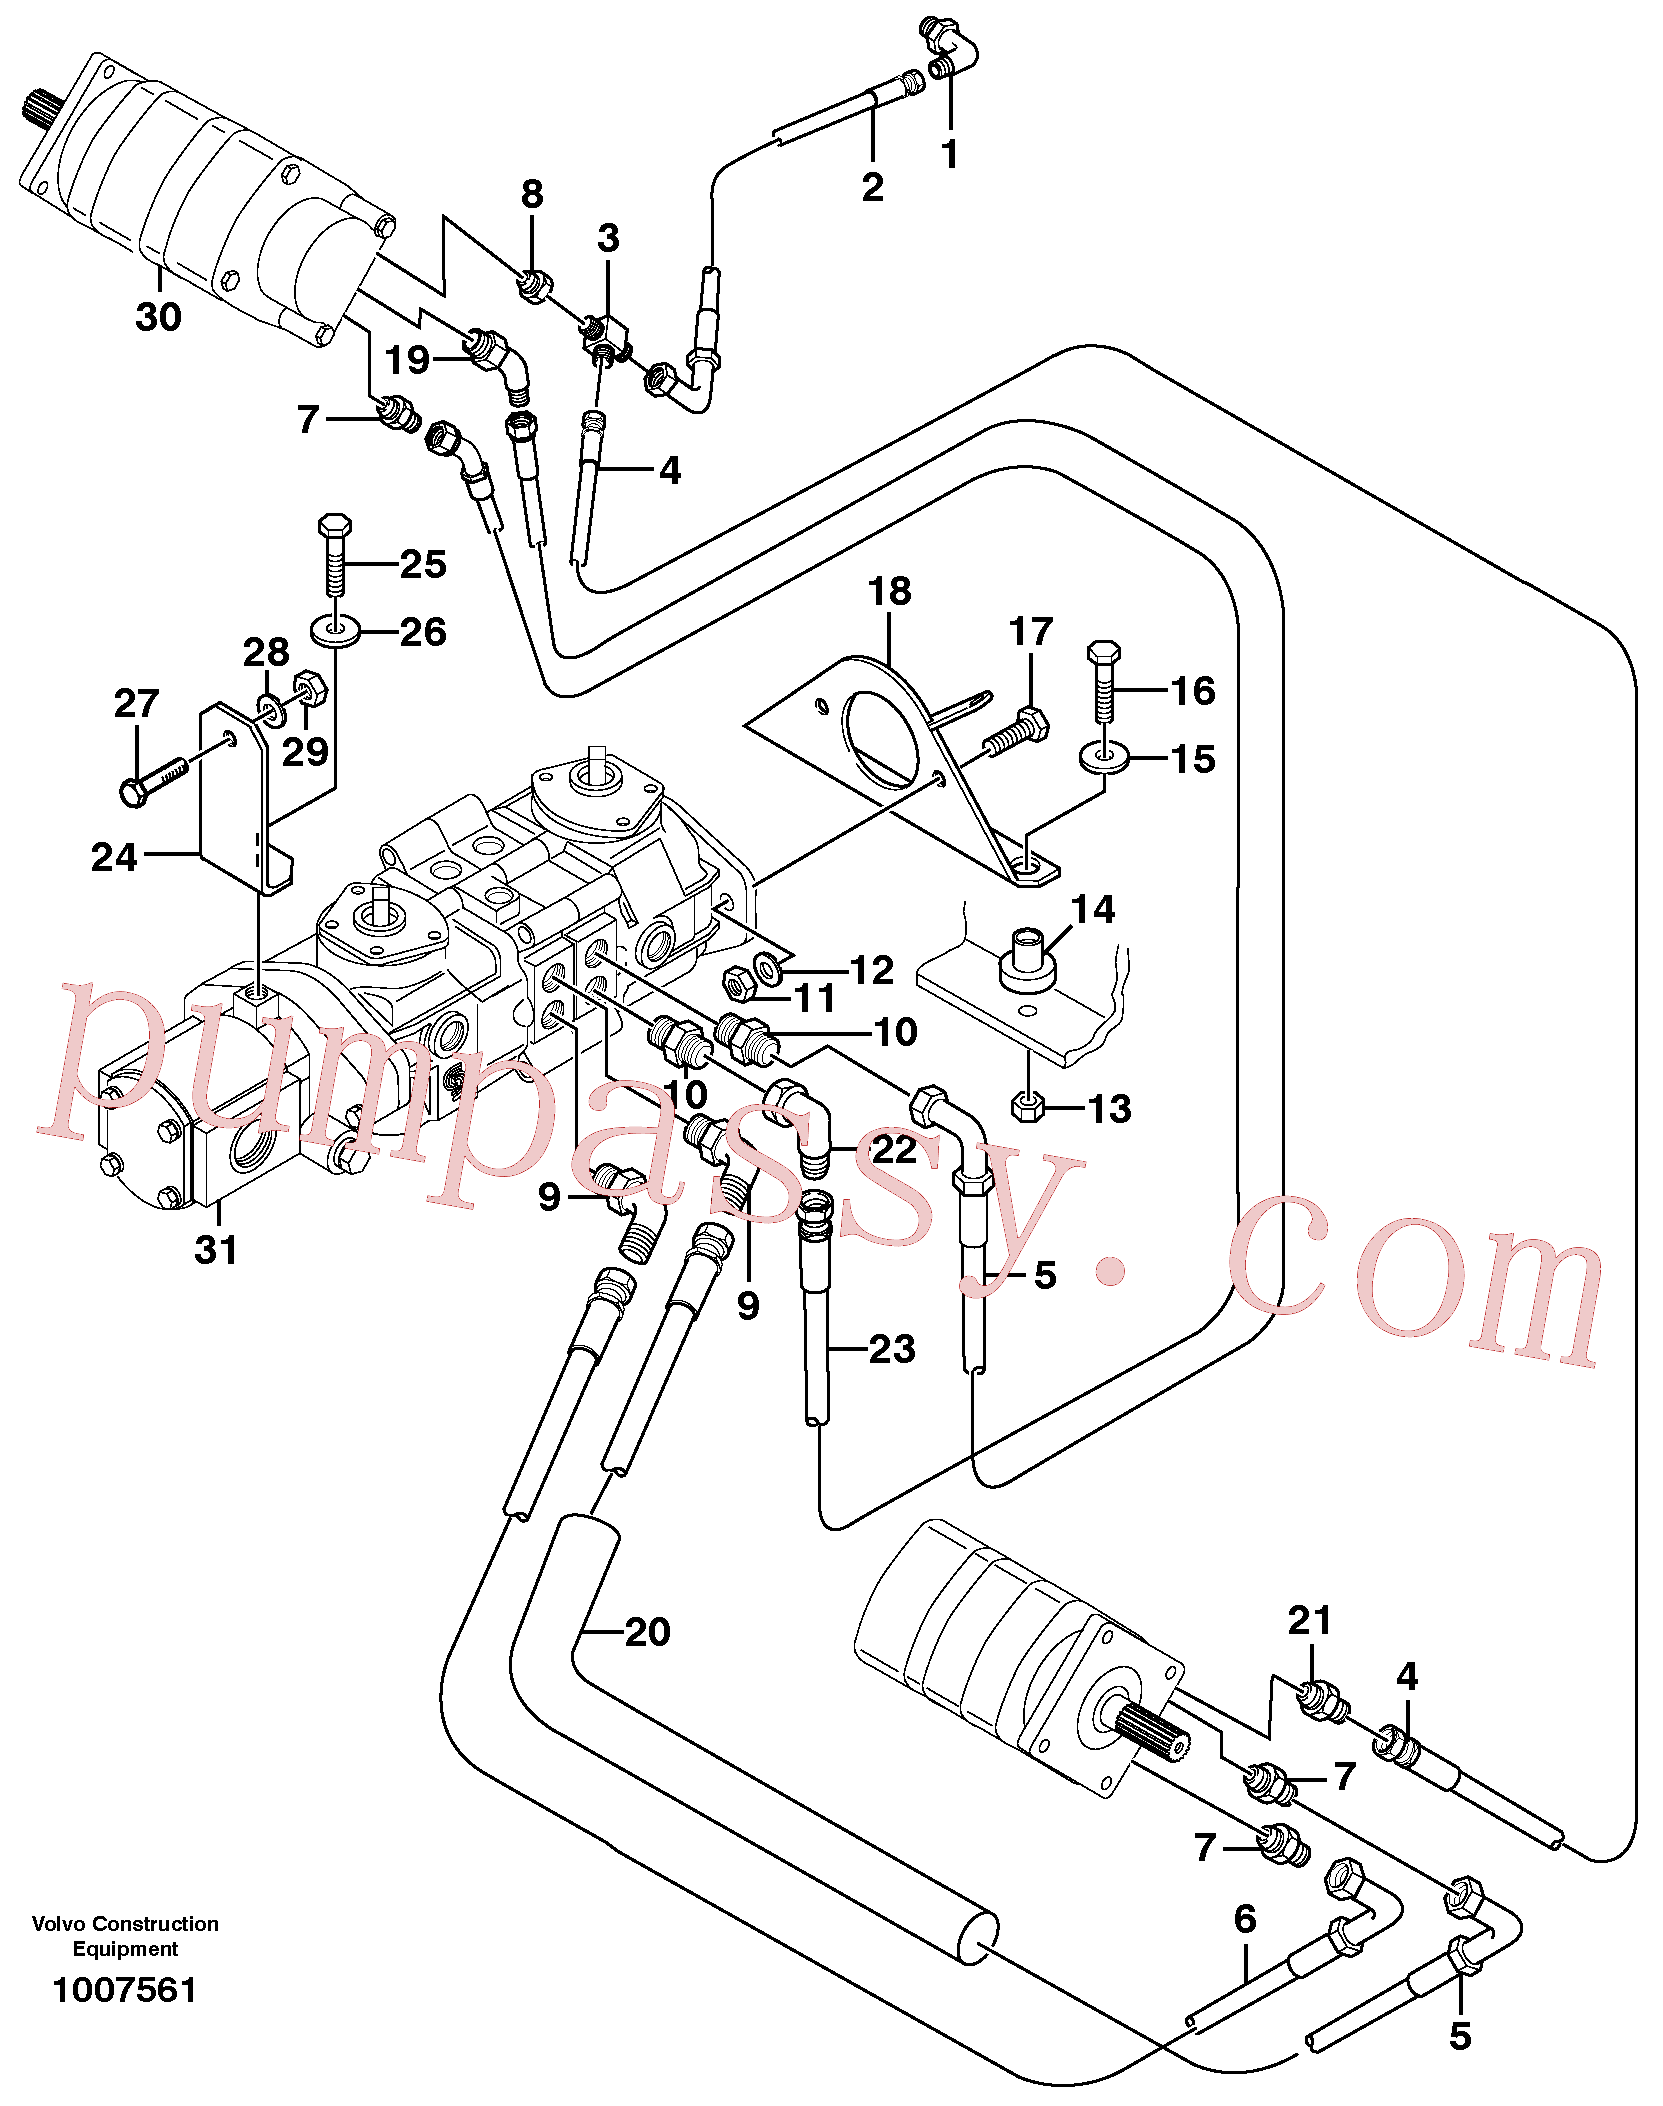 VOE11841125 for Volvo Hydraulic system Transport(1007561 assembly)